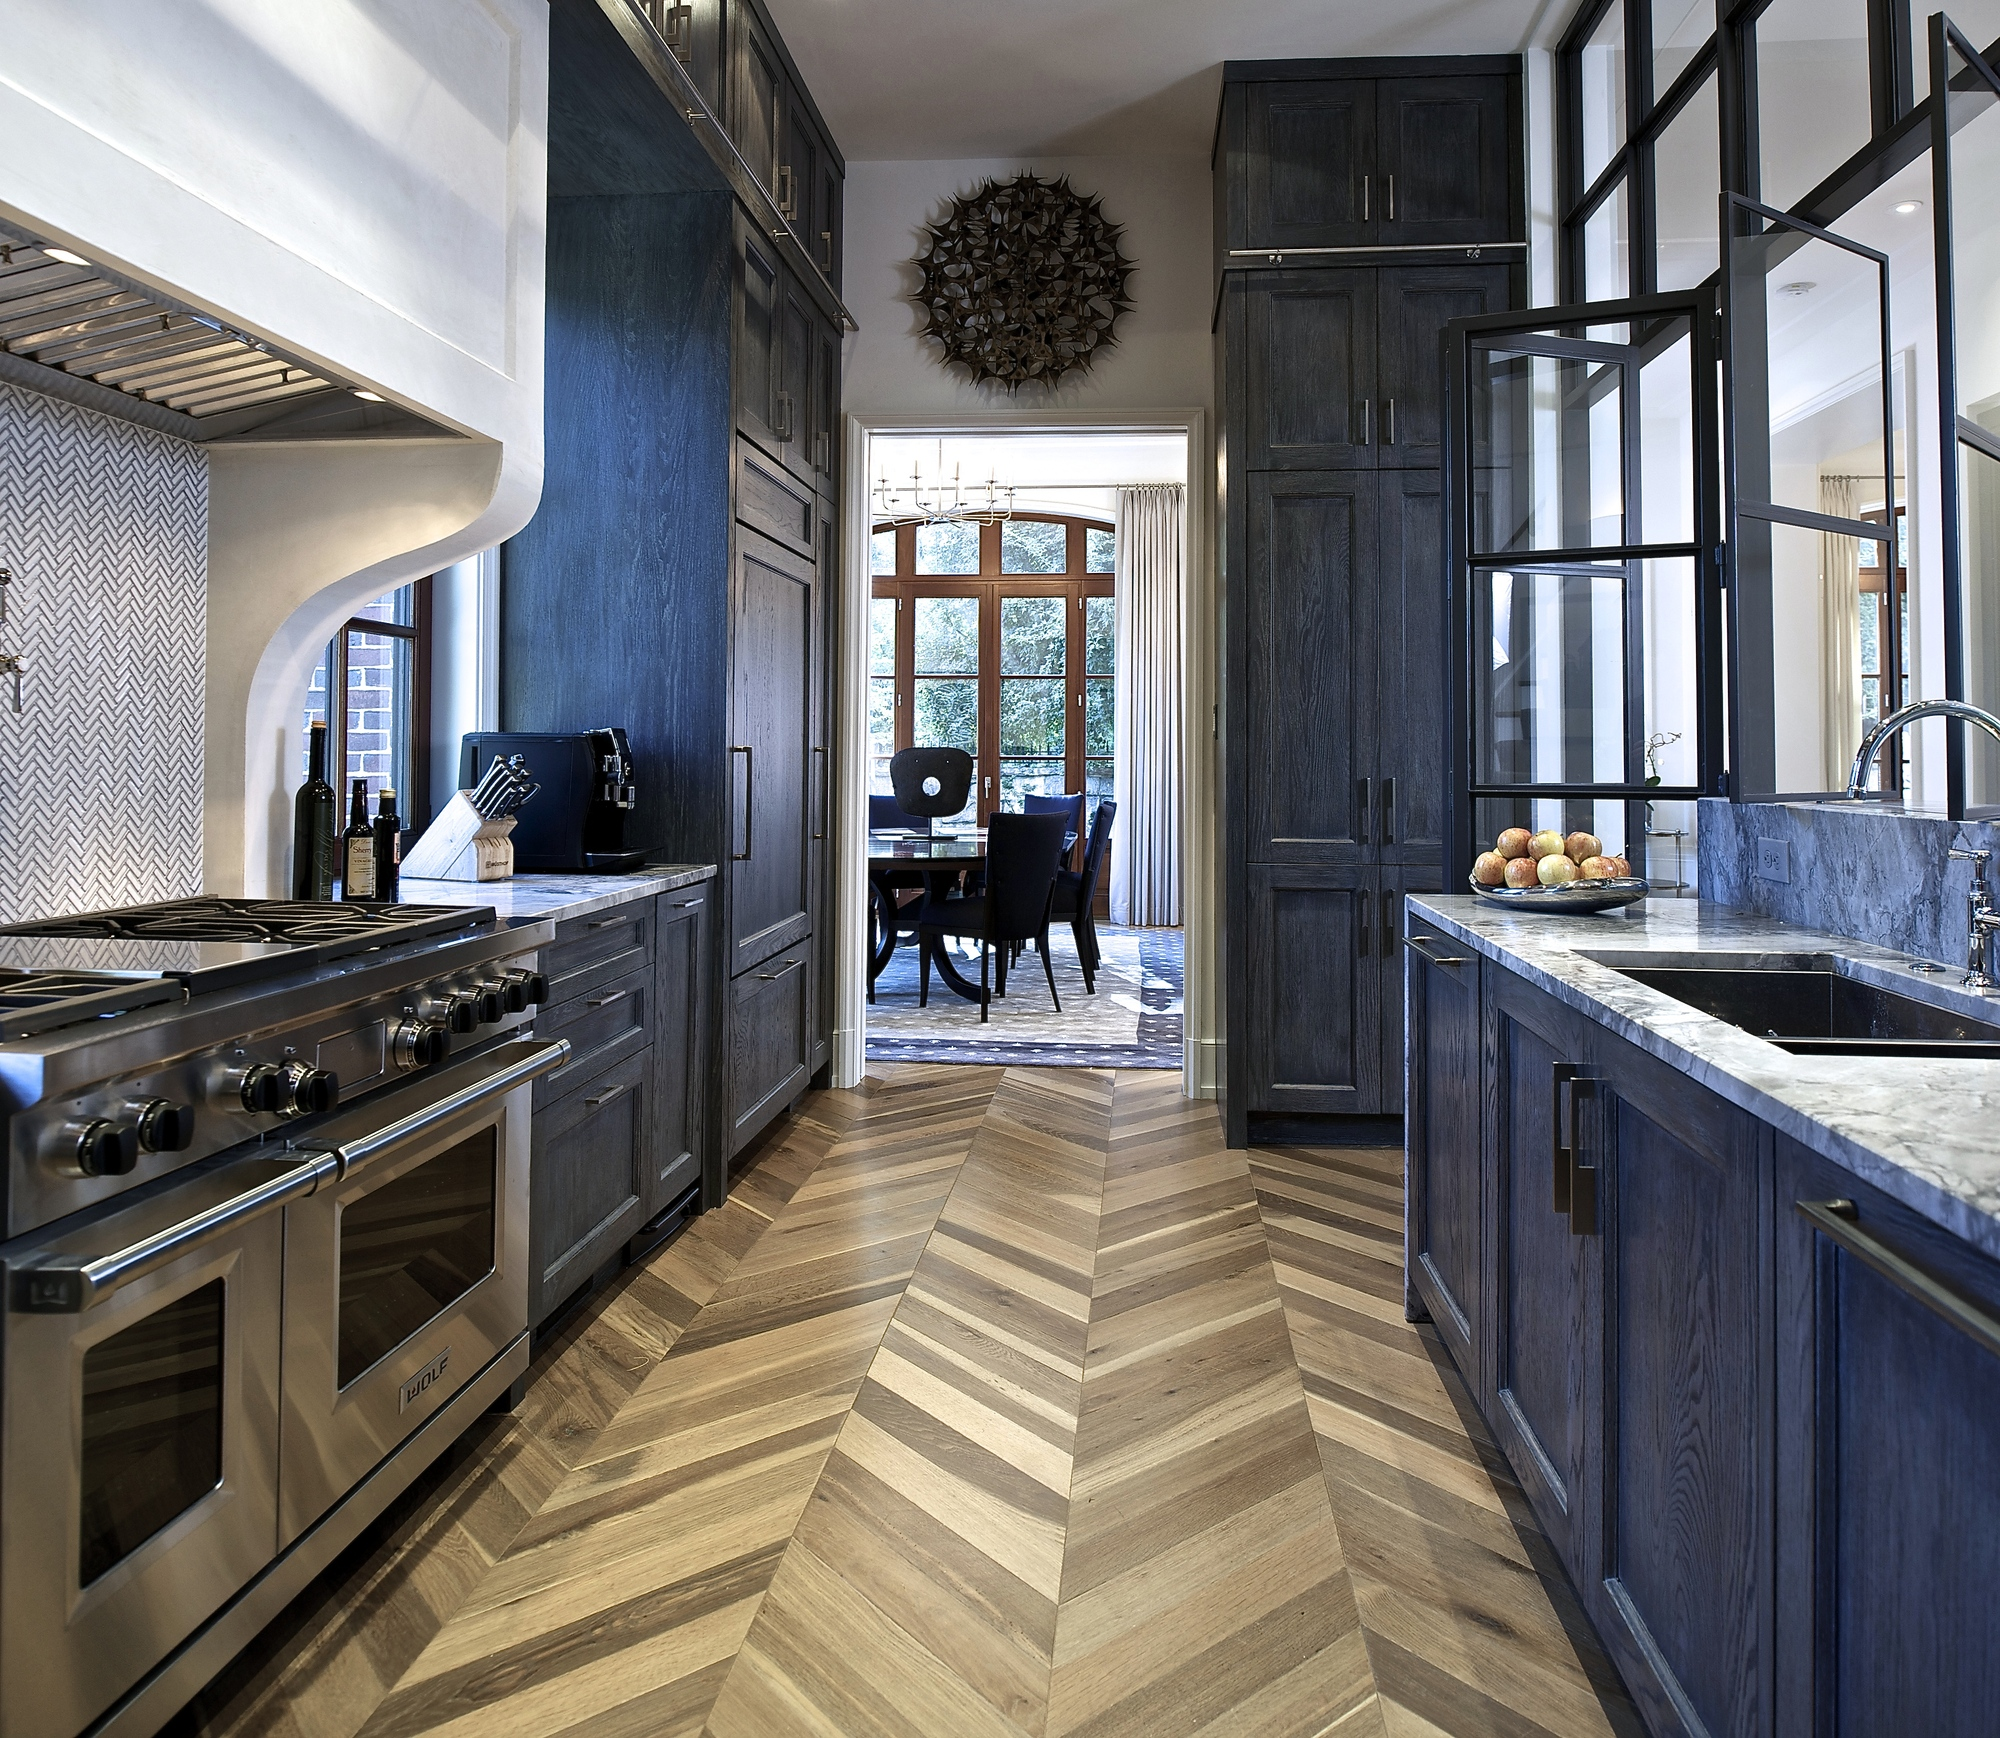 gallery of the world's most prominent kitchen design contest is